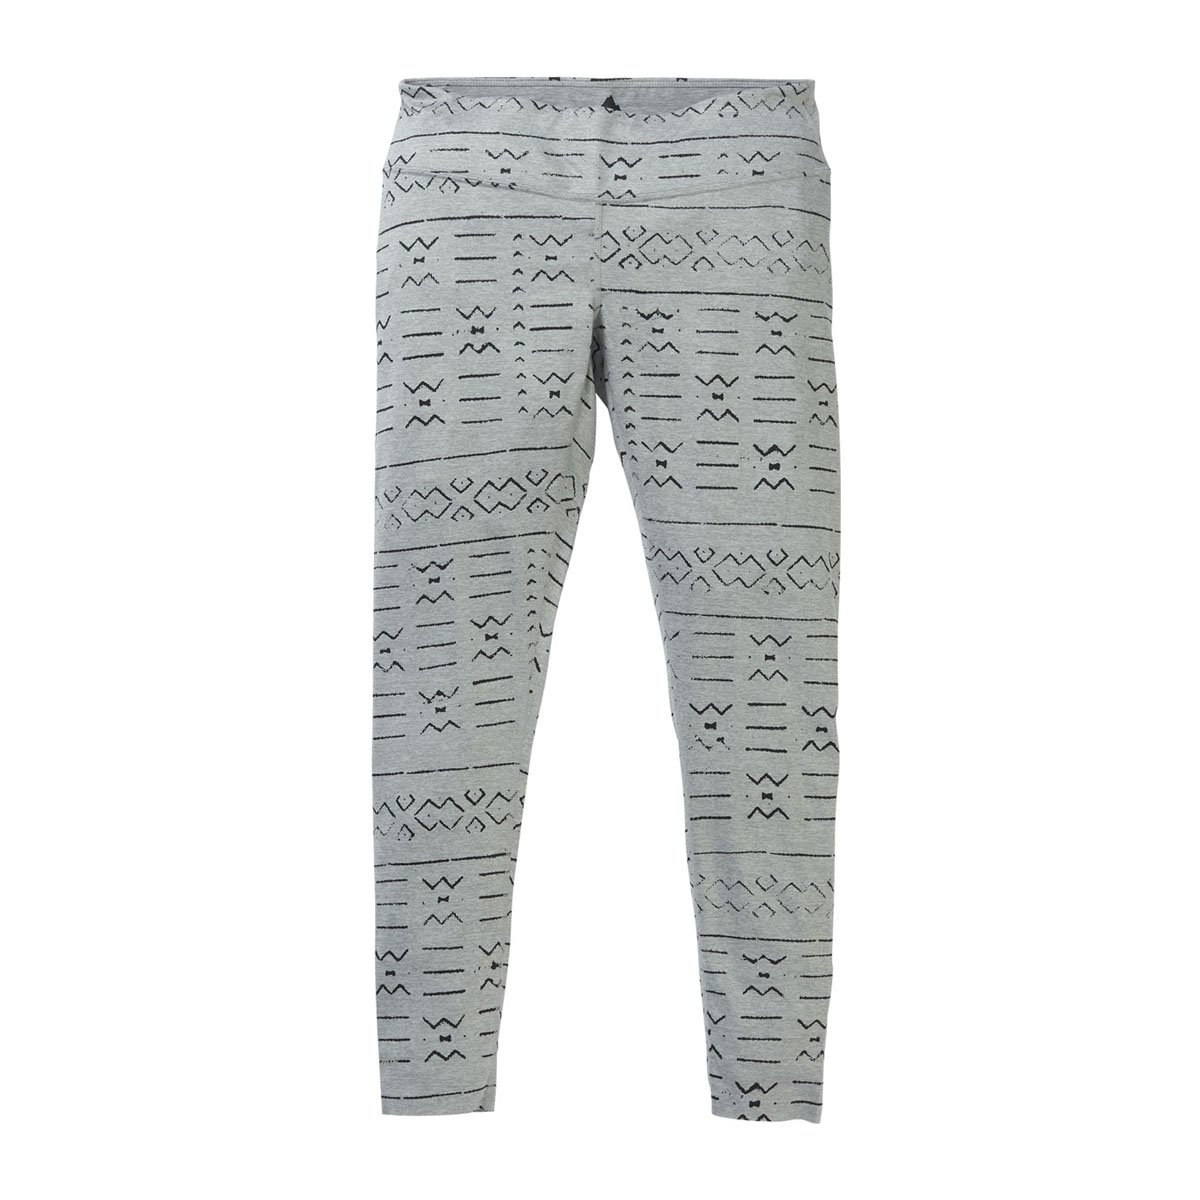 WB MIDWEIGHT PANT